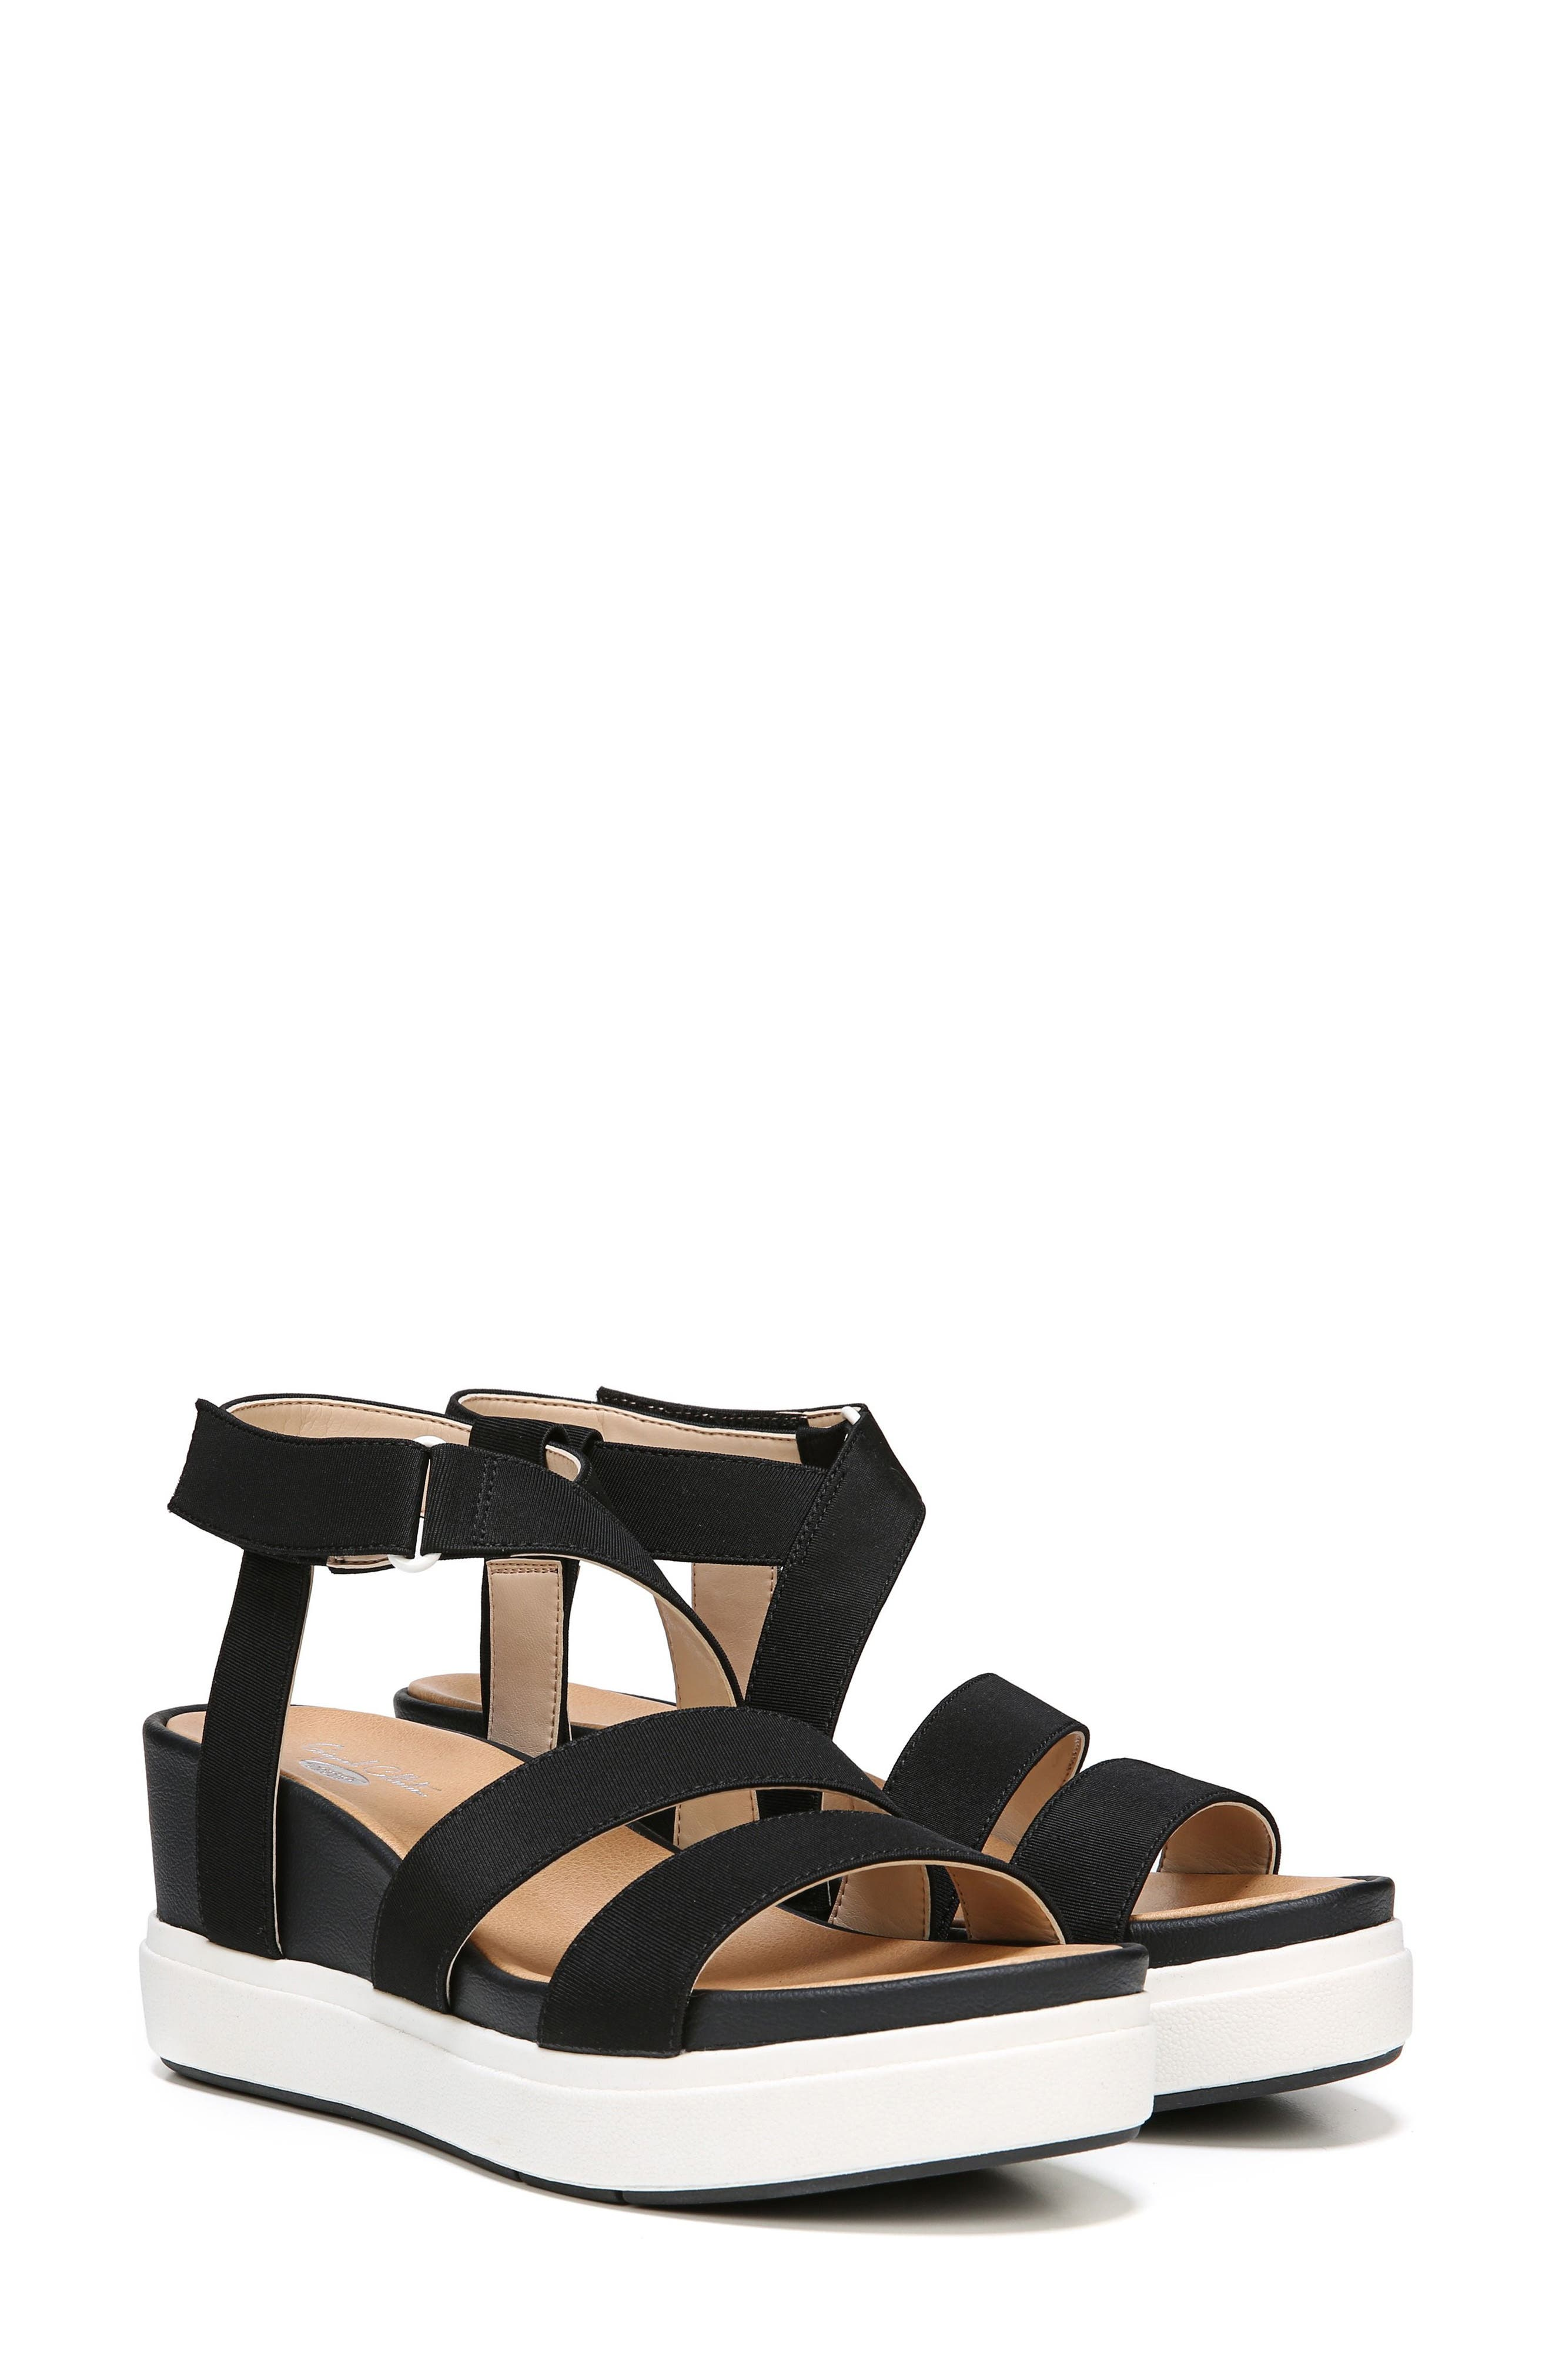 Social Wedge Sandal,                             Main thumbnail 1, color,                             BLACK